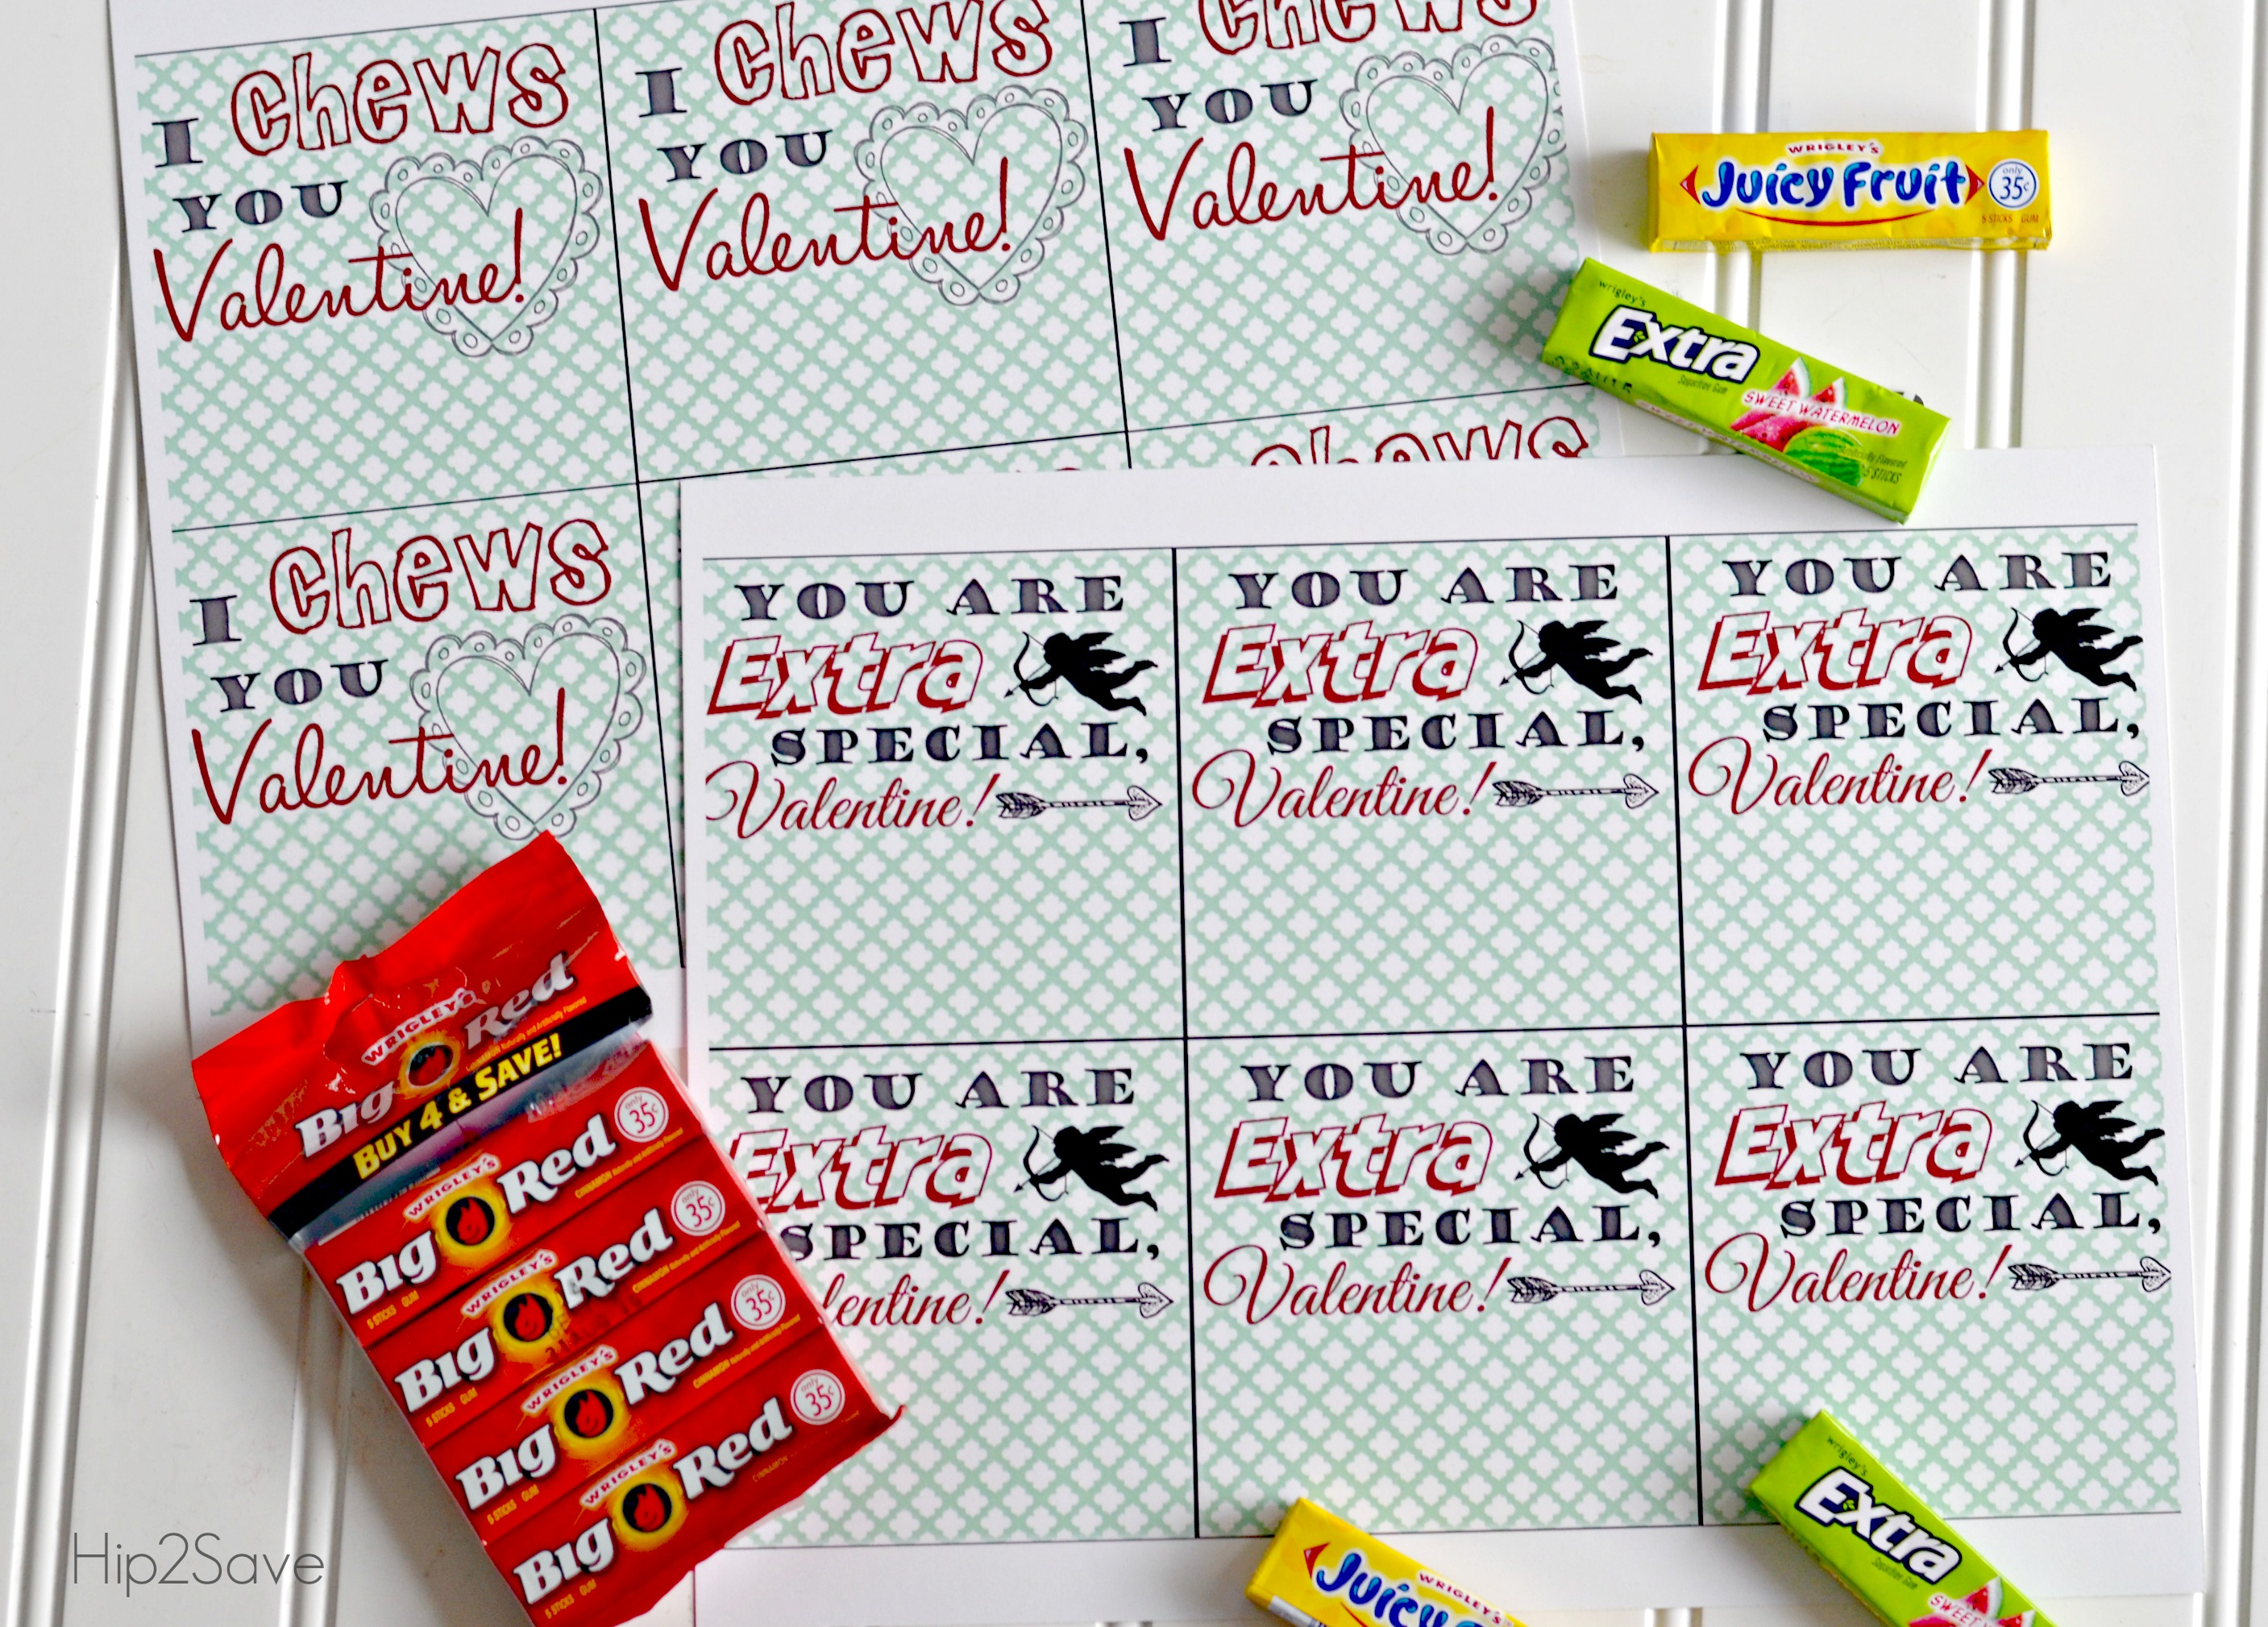 graphic about Extra Gum Valentine Printable identify Chewing Gum Valentines Working day Playing cards (Cost-free Printables) - Hip2Preserve